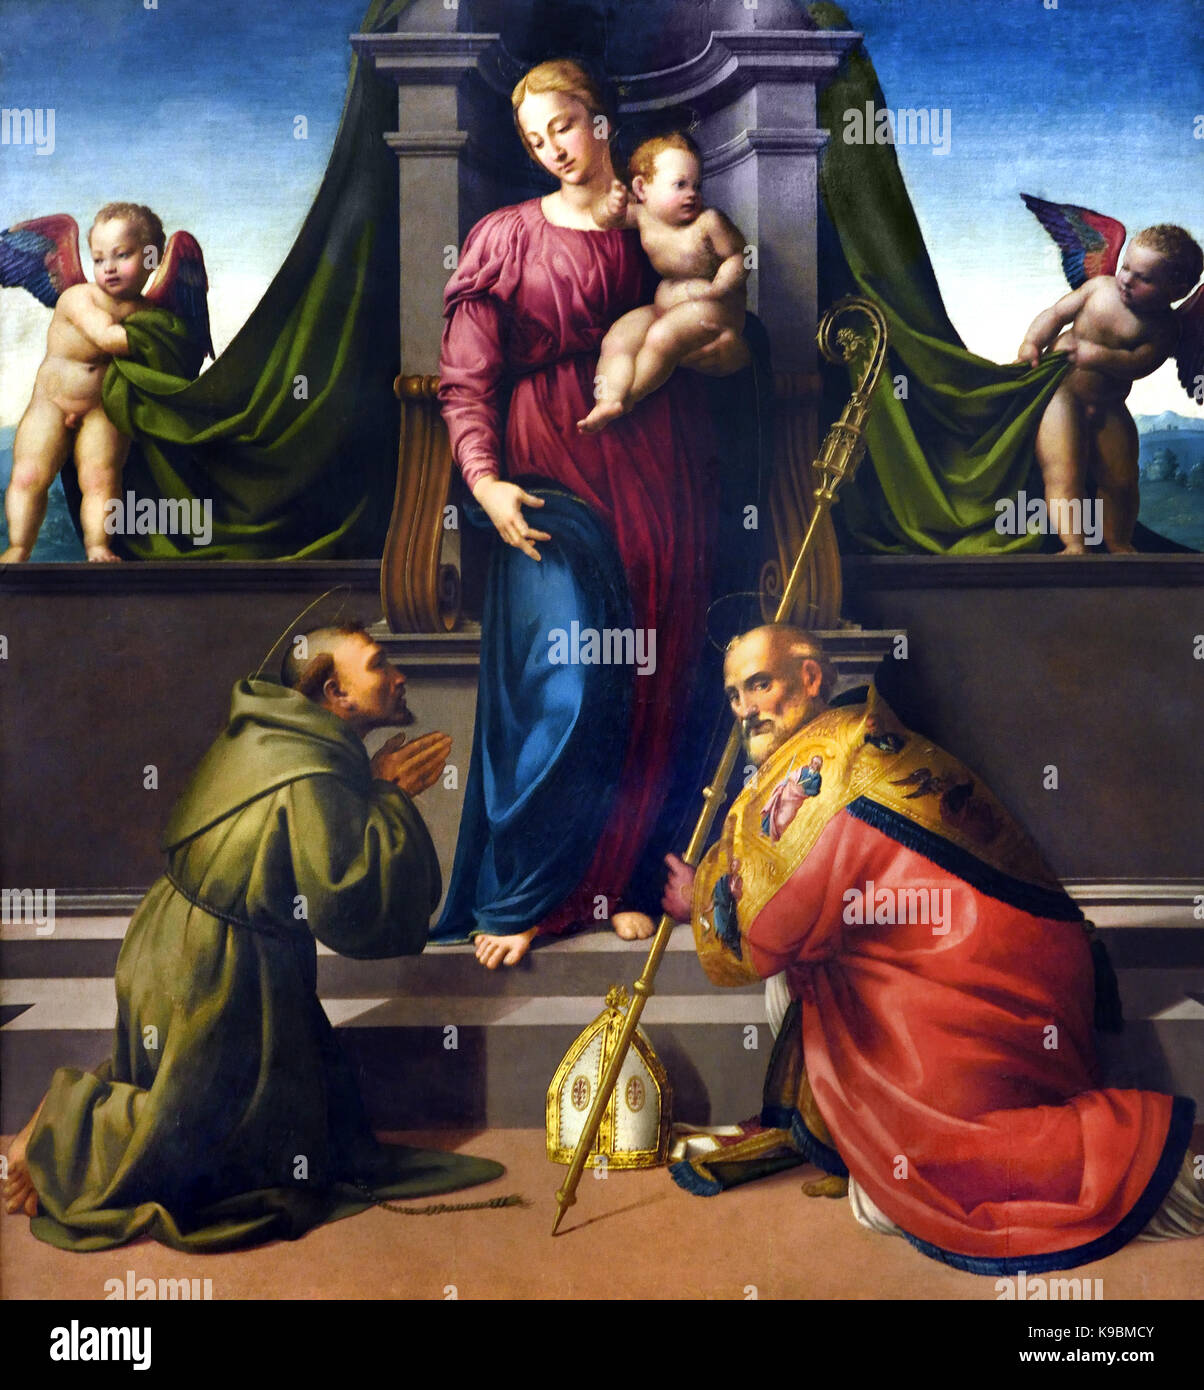 Madonna and Child with Saint Francis and Zenobius by Francesco Granacci 1469 – 1543 was an Italian painter of the - Stock Image